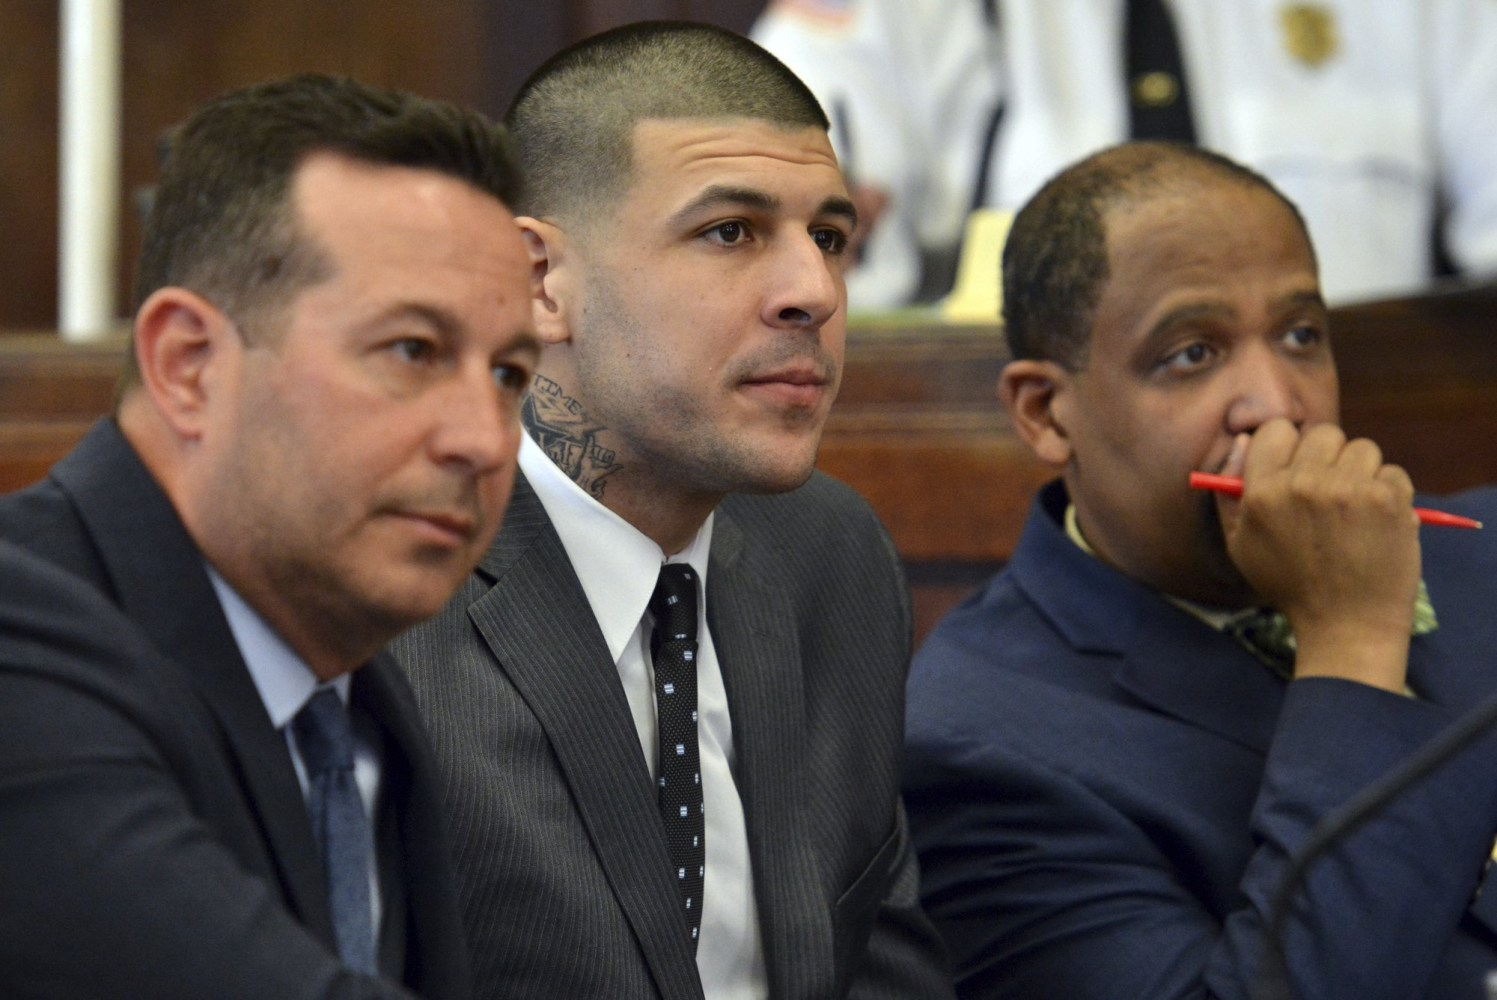 aaron hernandez jury selection begins in former new england image aaron hernandez and his attorneys at his double murder trial in boston